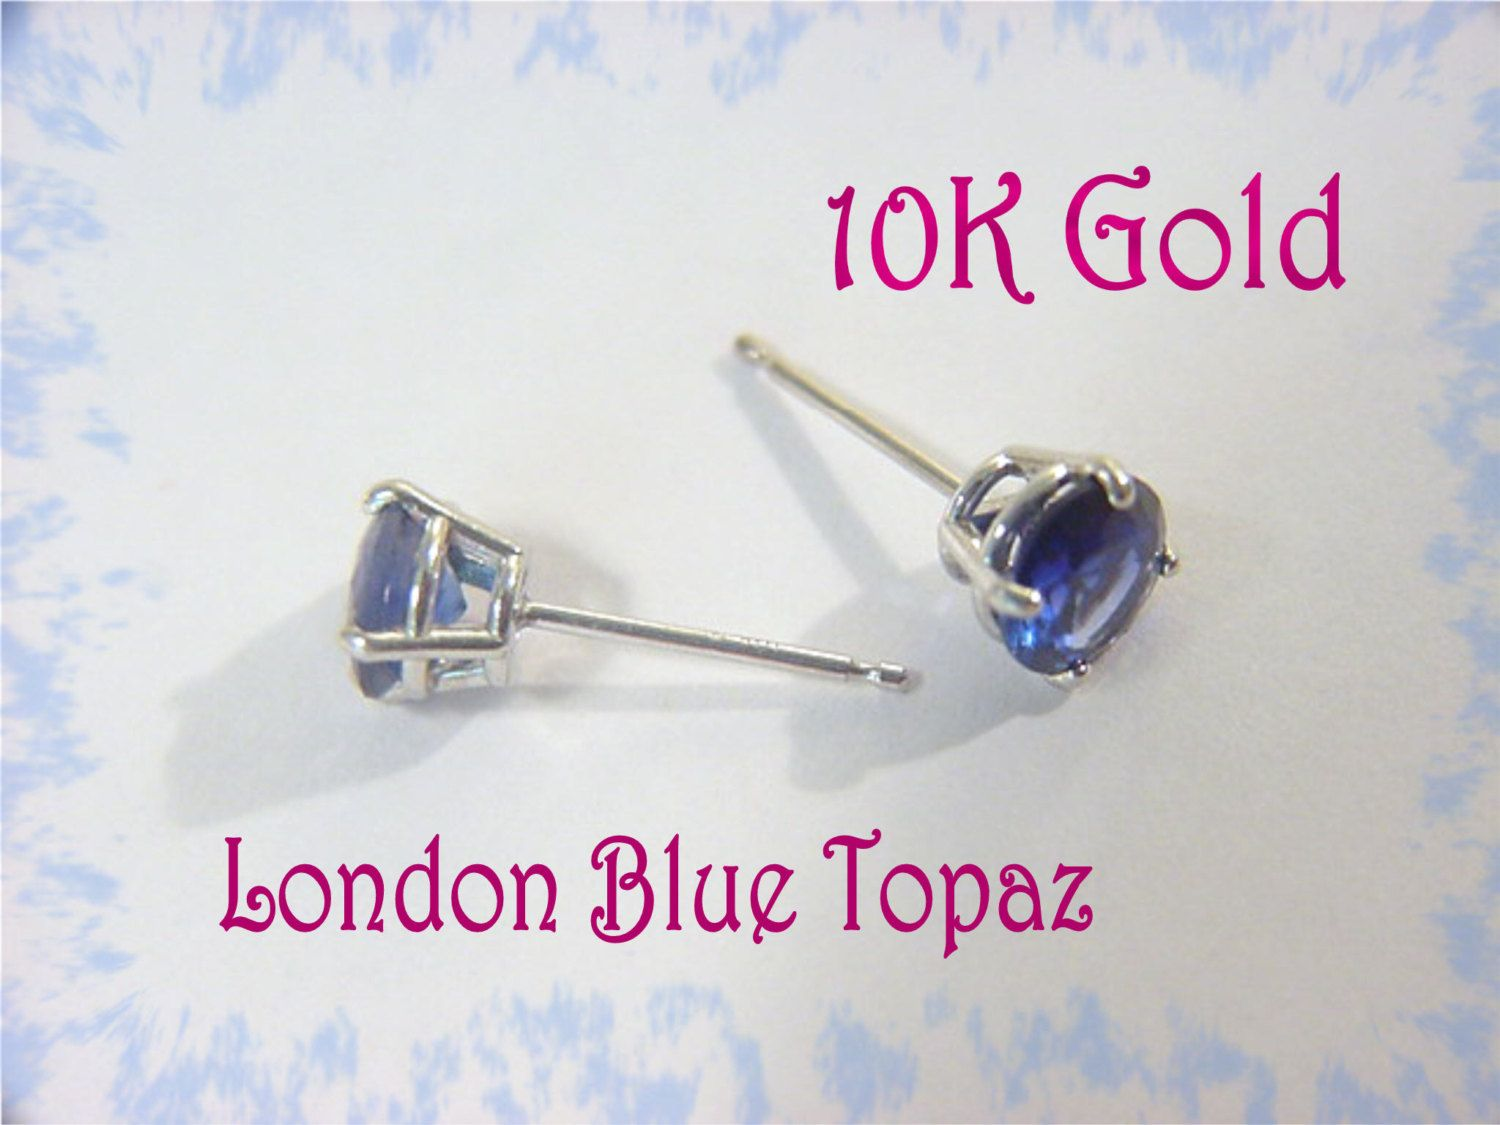 10K White Gold - 1 Ct London Blue Topaz Stud Earrings - Gift Boxed - Wedding Bride Bridesmaids - Perfect Gift Friend Mother -  FREE SHIPPING by FindMeTreasures on Etsy